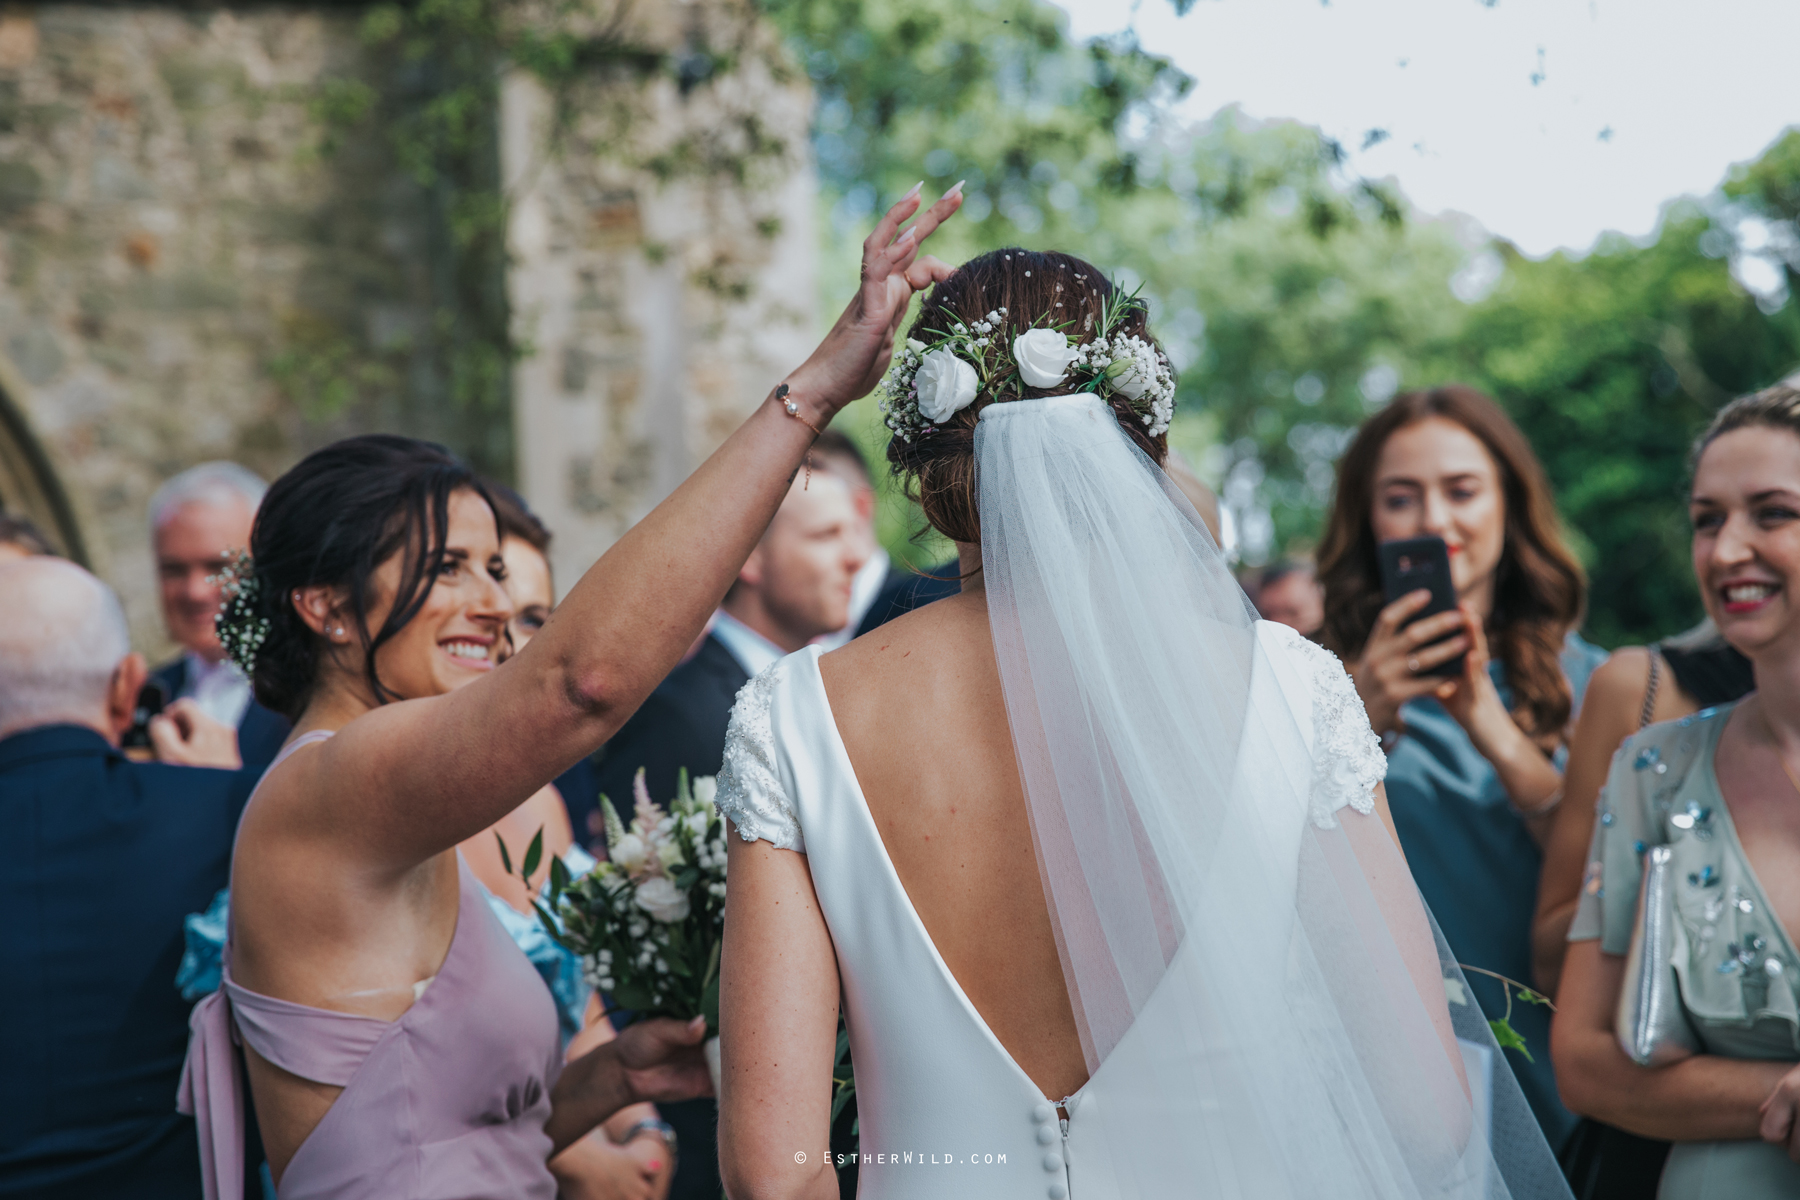 Wootton_Wedding_Copyright_Esther_Wild_Photographer_IMG_1242.jpg